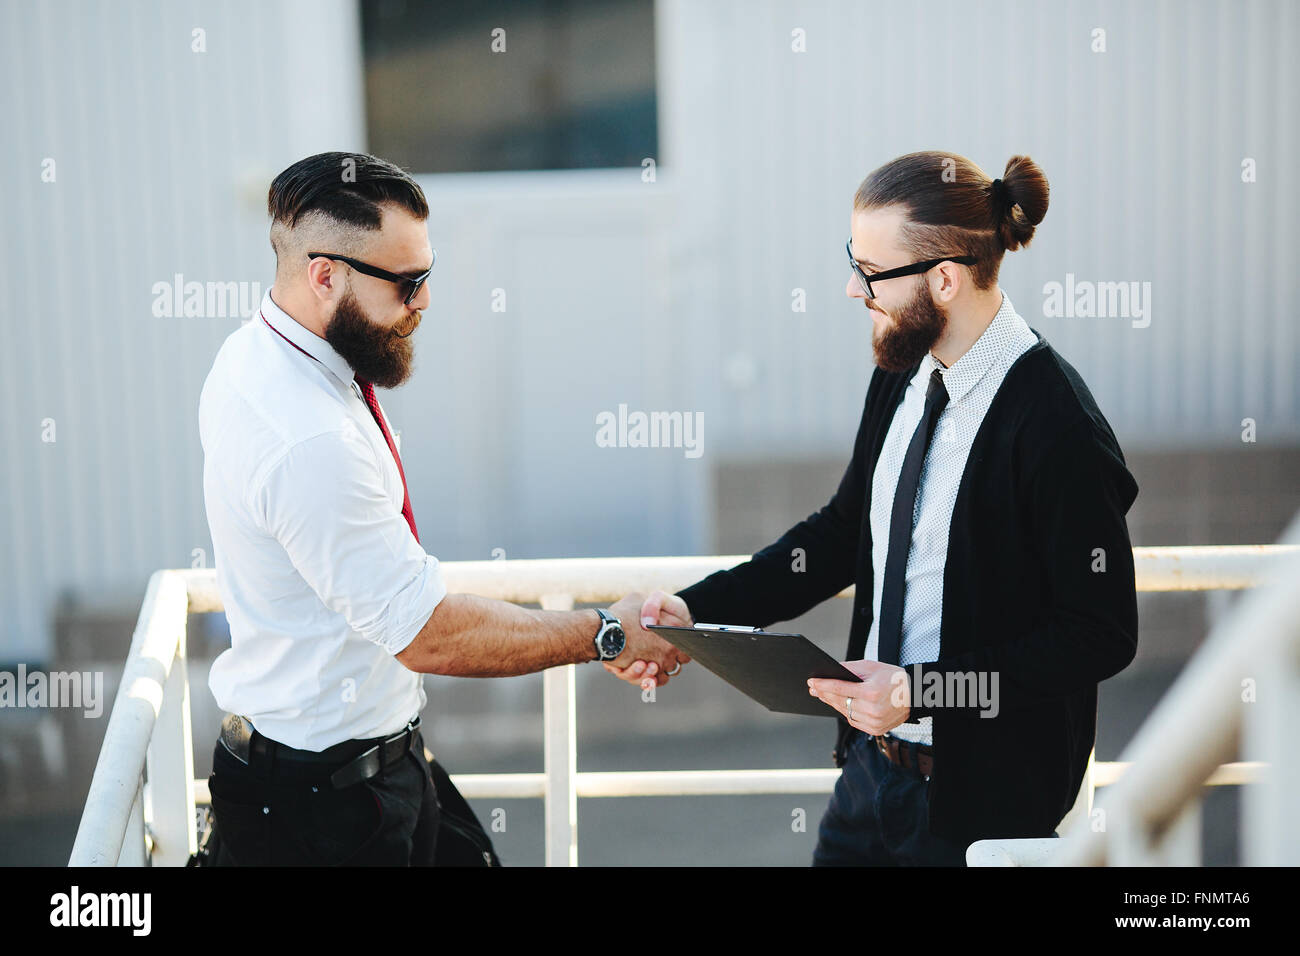 Two businessmen shaking hands - Stock Image